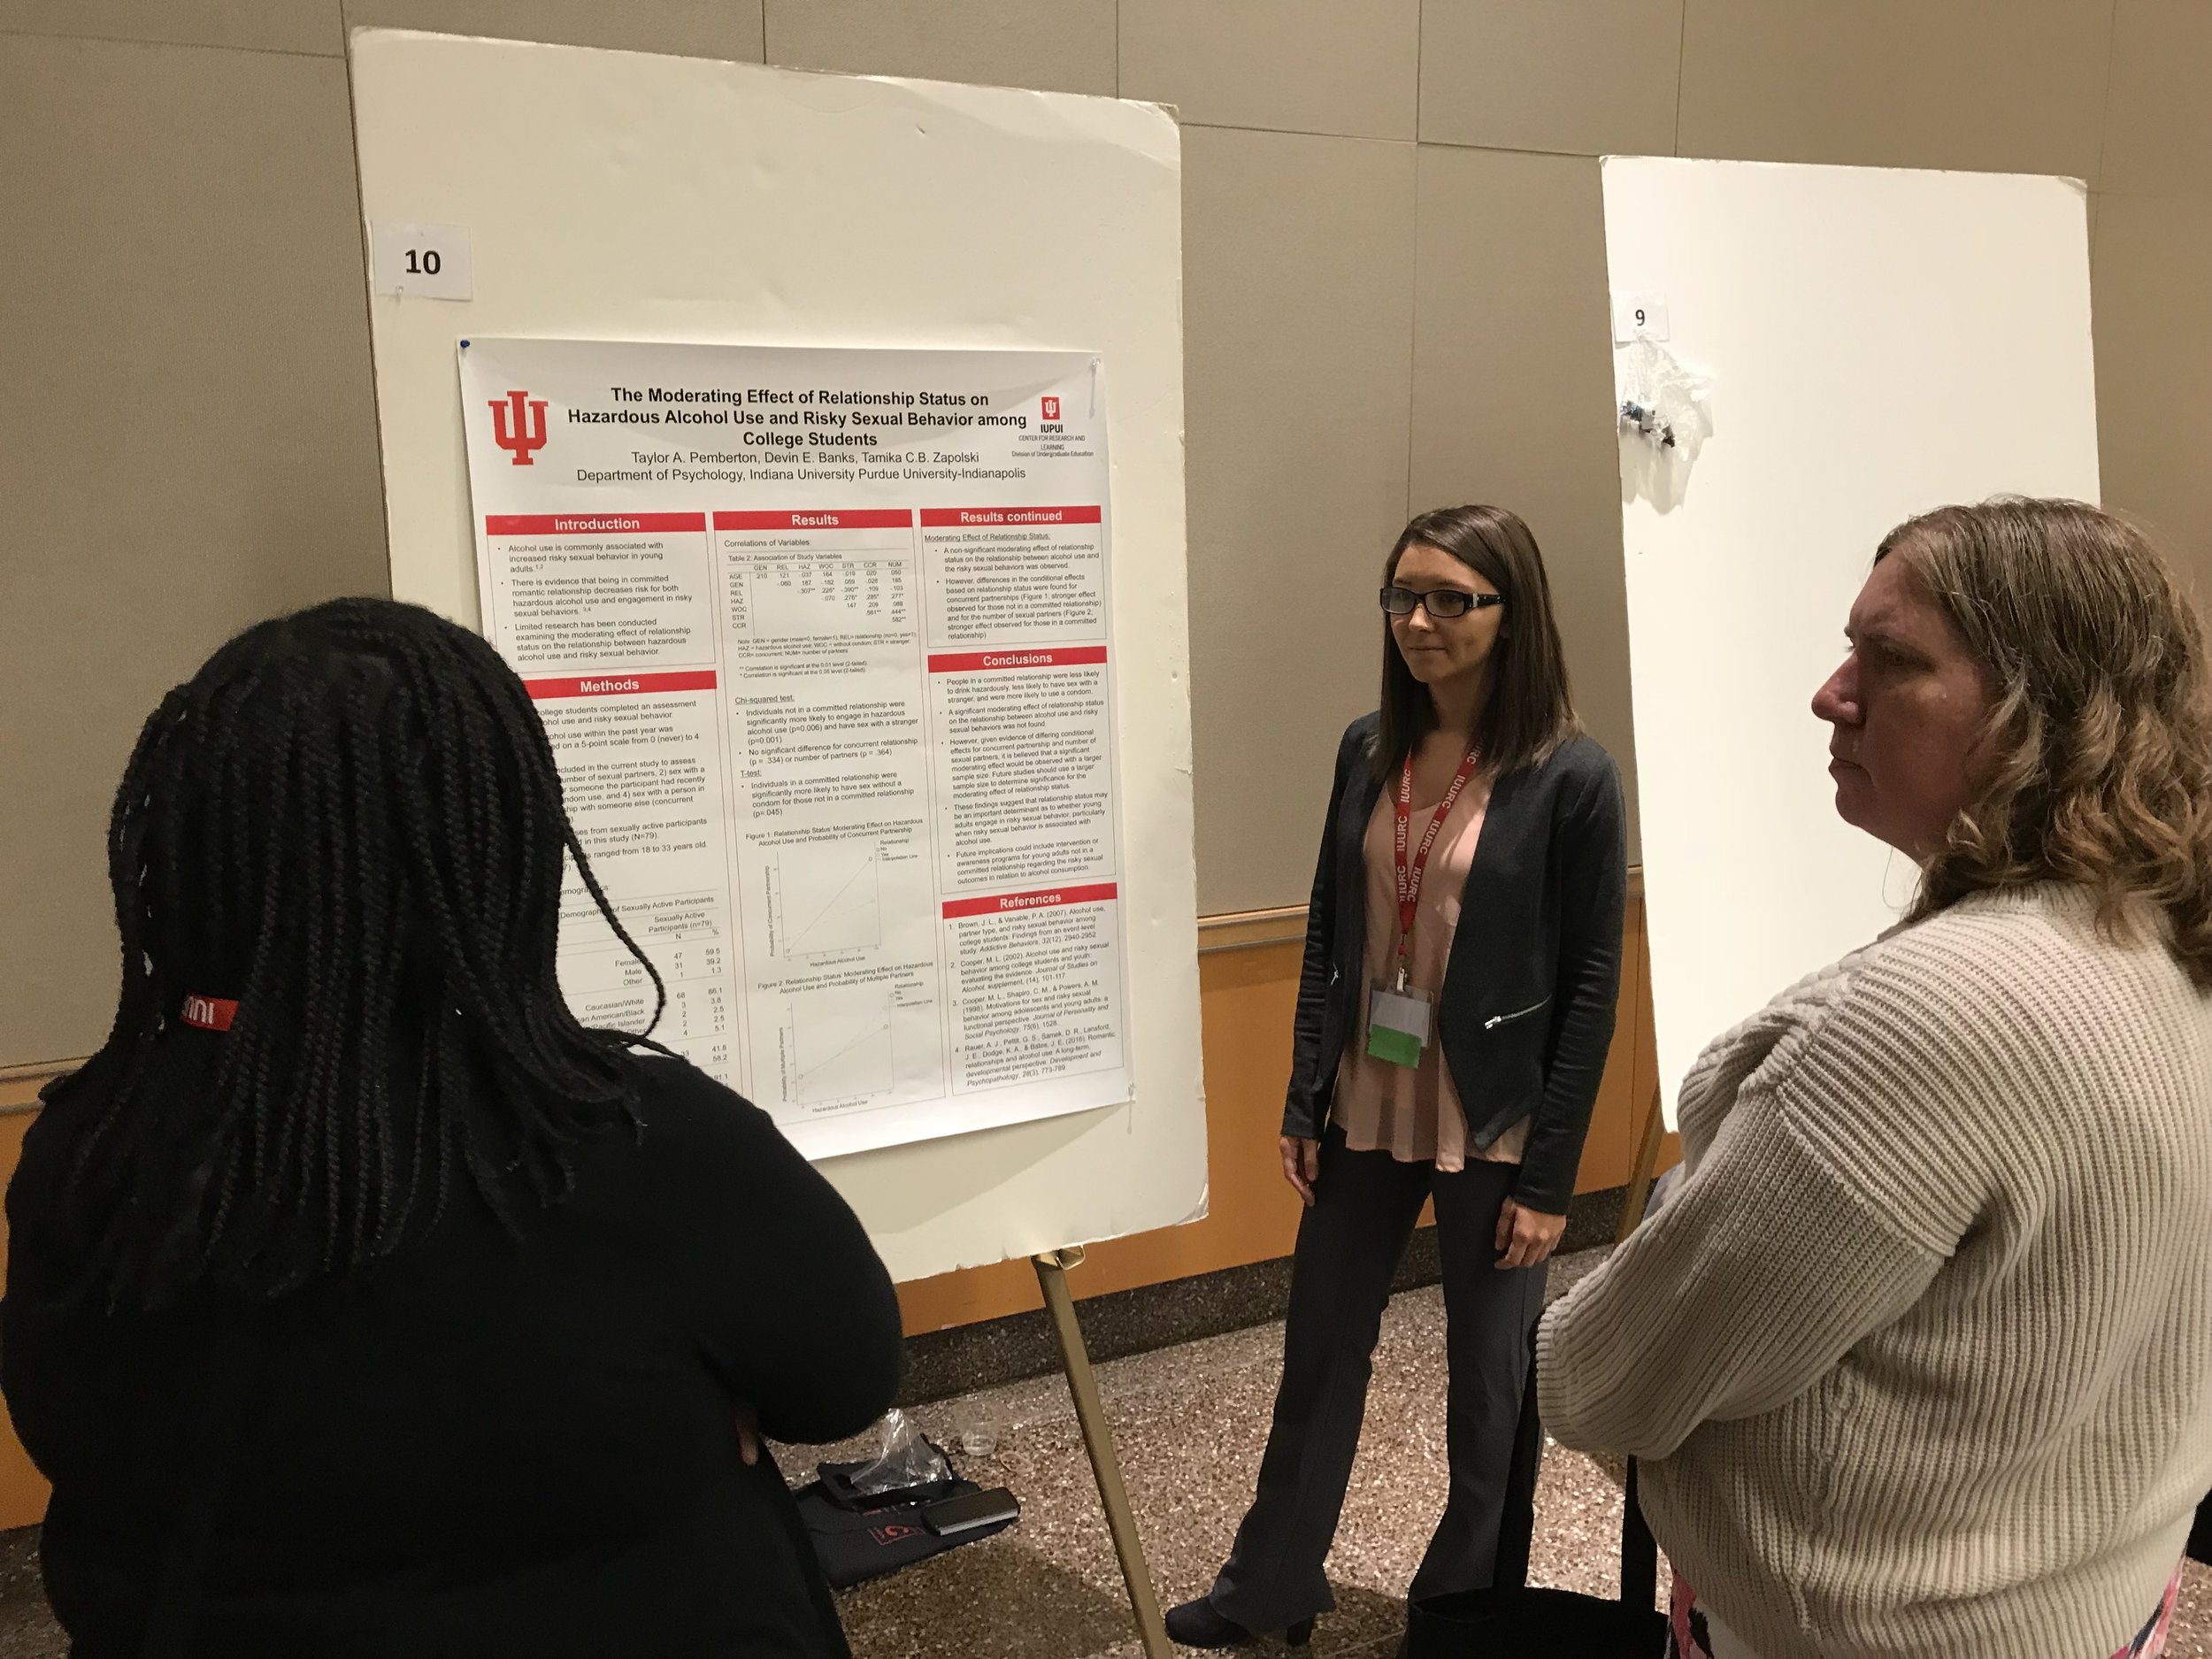 Taylor Pemberton presents her research on risky sexual behavior and alcohol use.